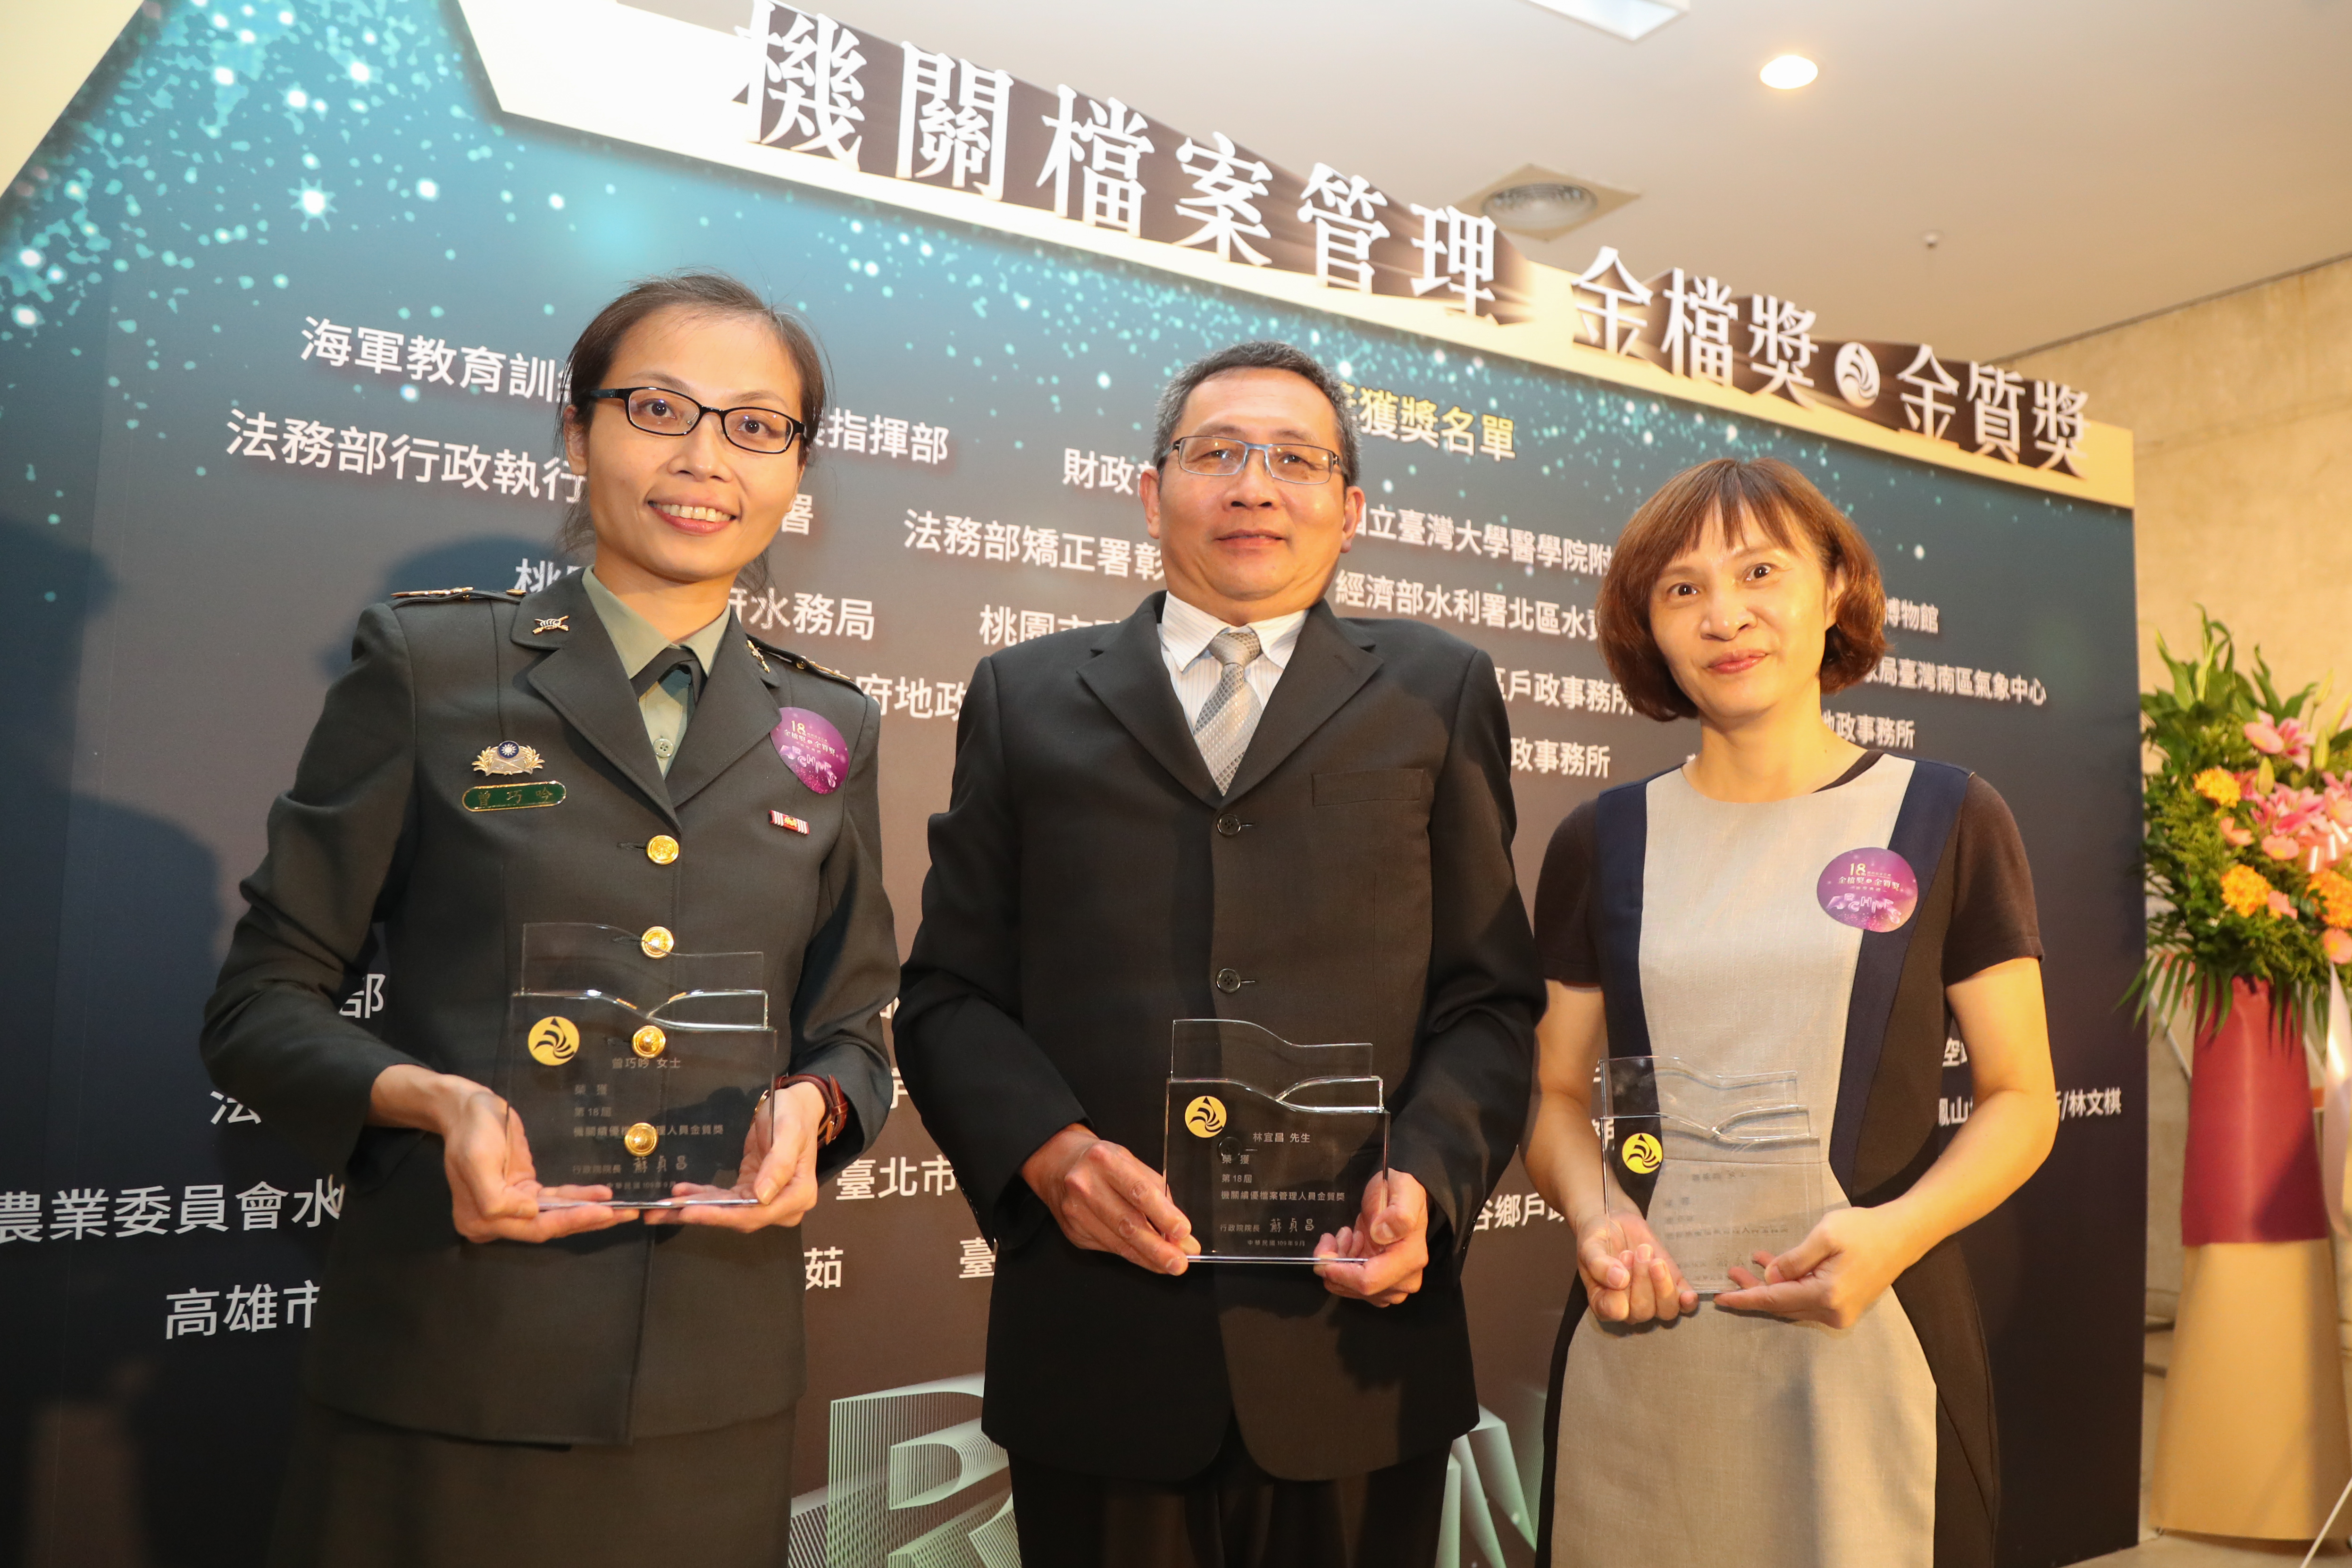 MND wins awards for outstanding archive and record management